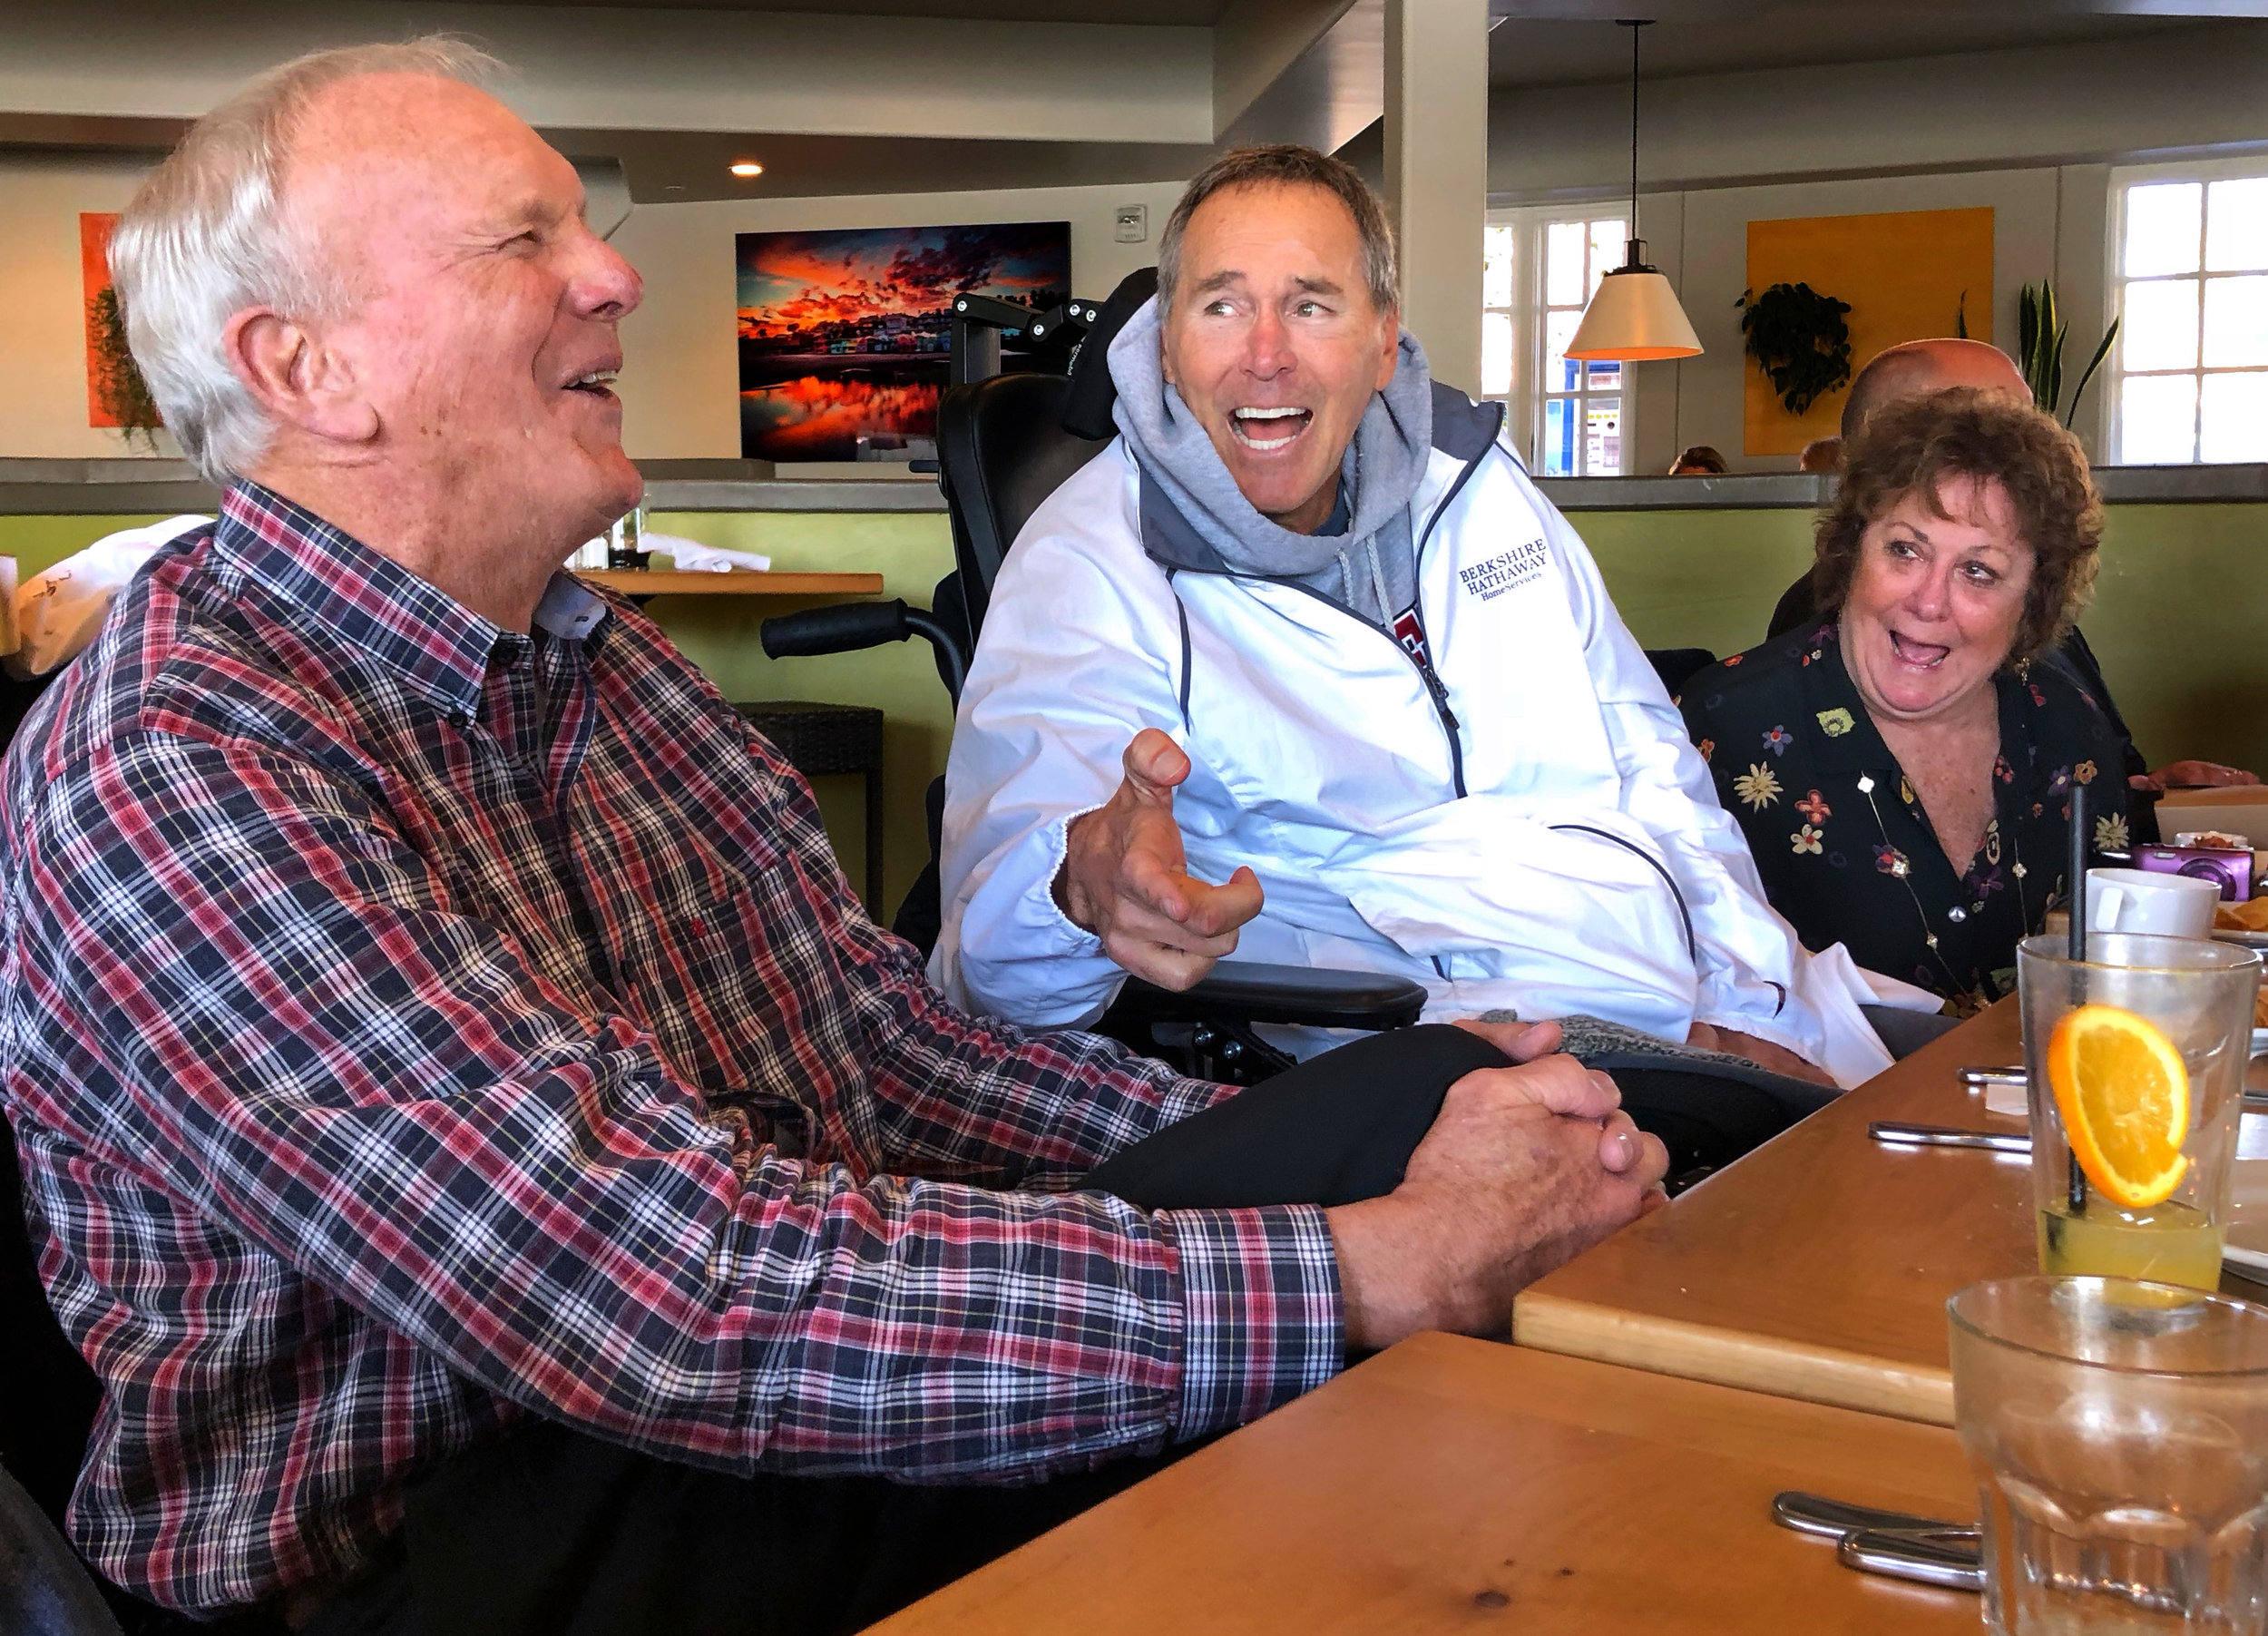 Sam Wyche, Dwight Clark, and Nicole Gisele laugh during lunch in Capitola, California, on February 27, 2018.